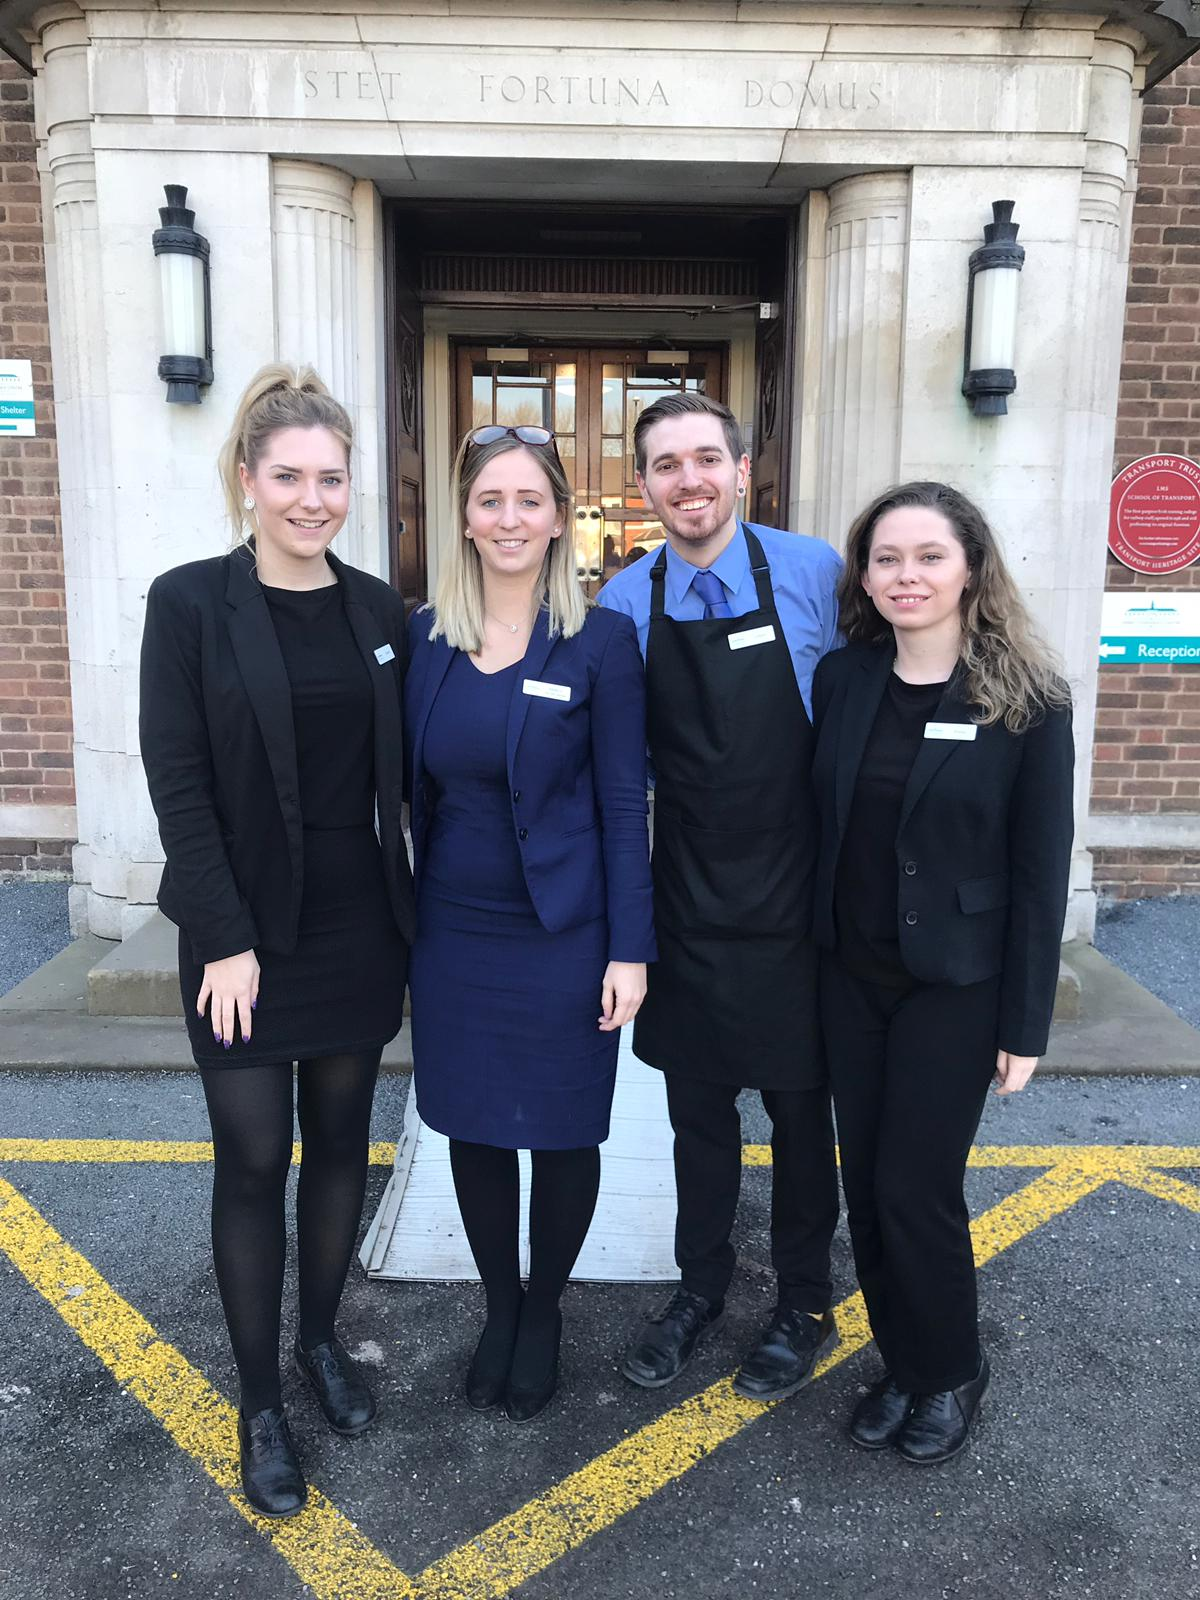 The Derby Conference Centre continues to help students take the first steps in their careers